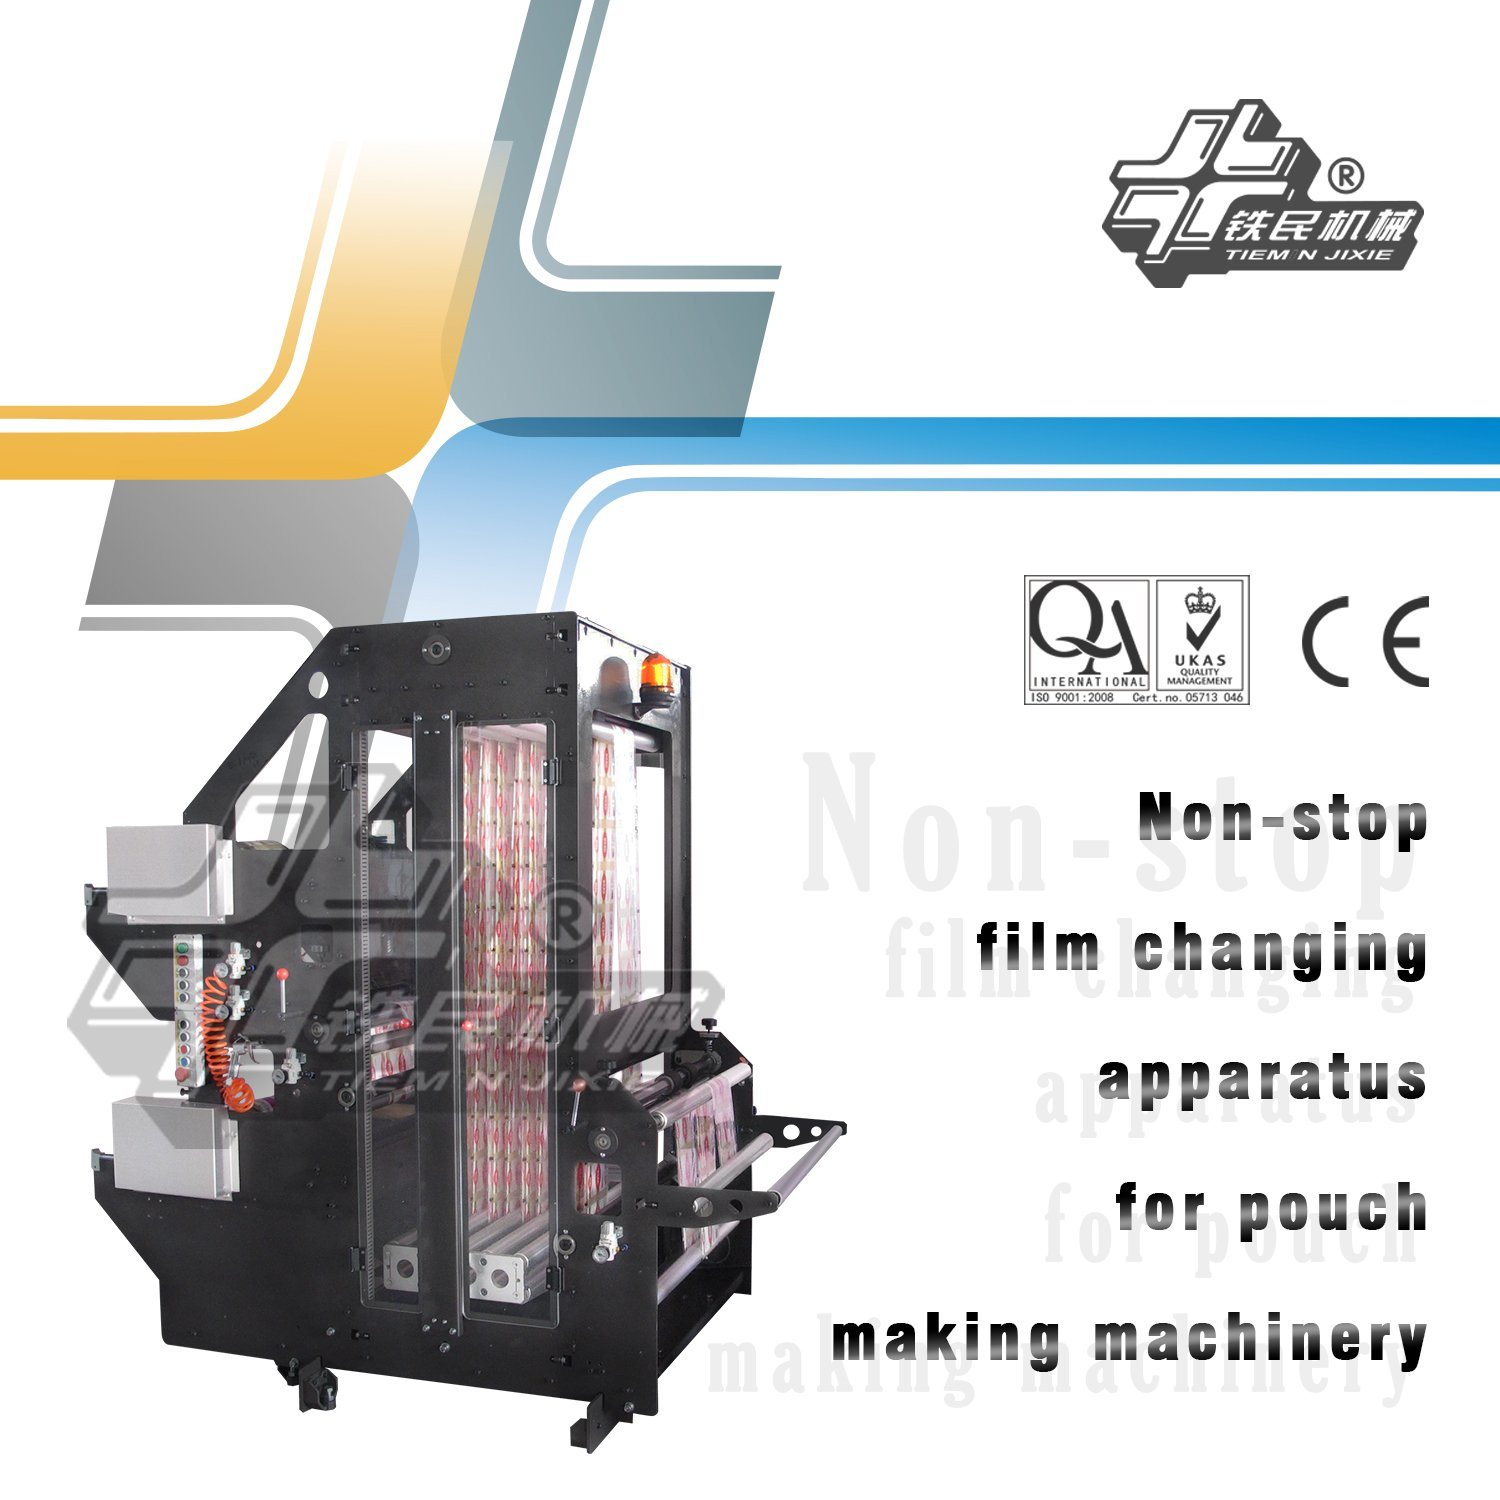 Non-Stop Film Changing Apparatus for Pouch Making Machinery